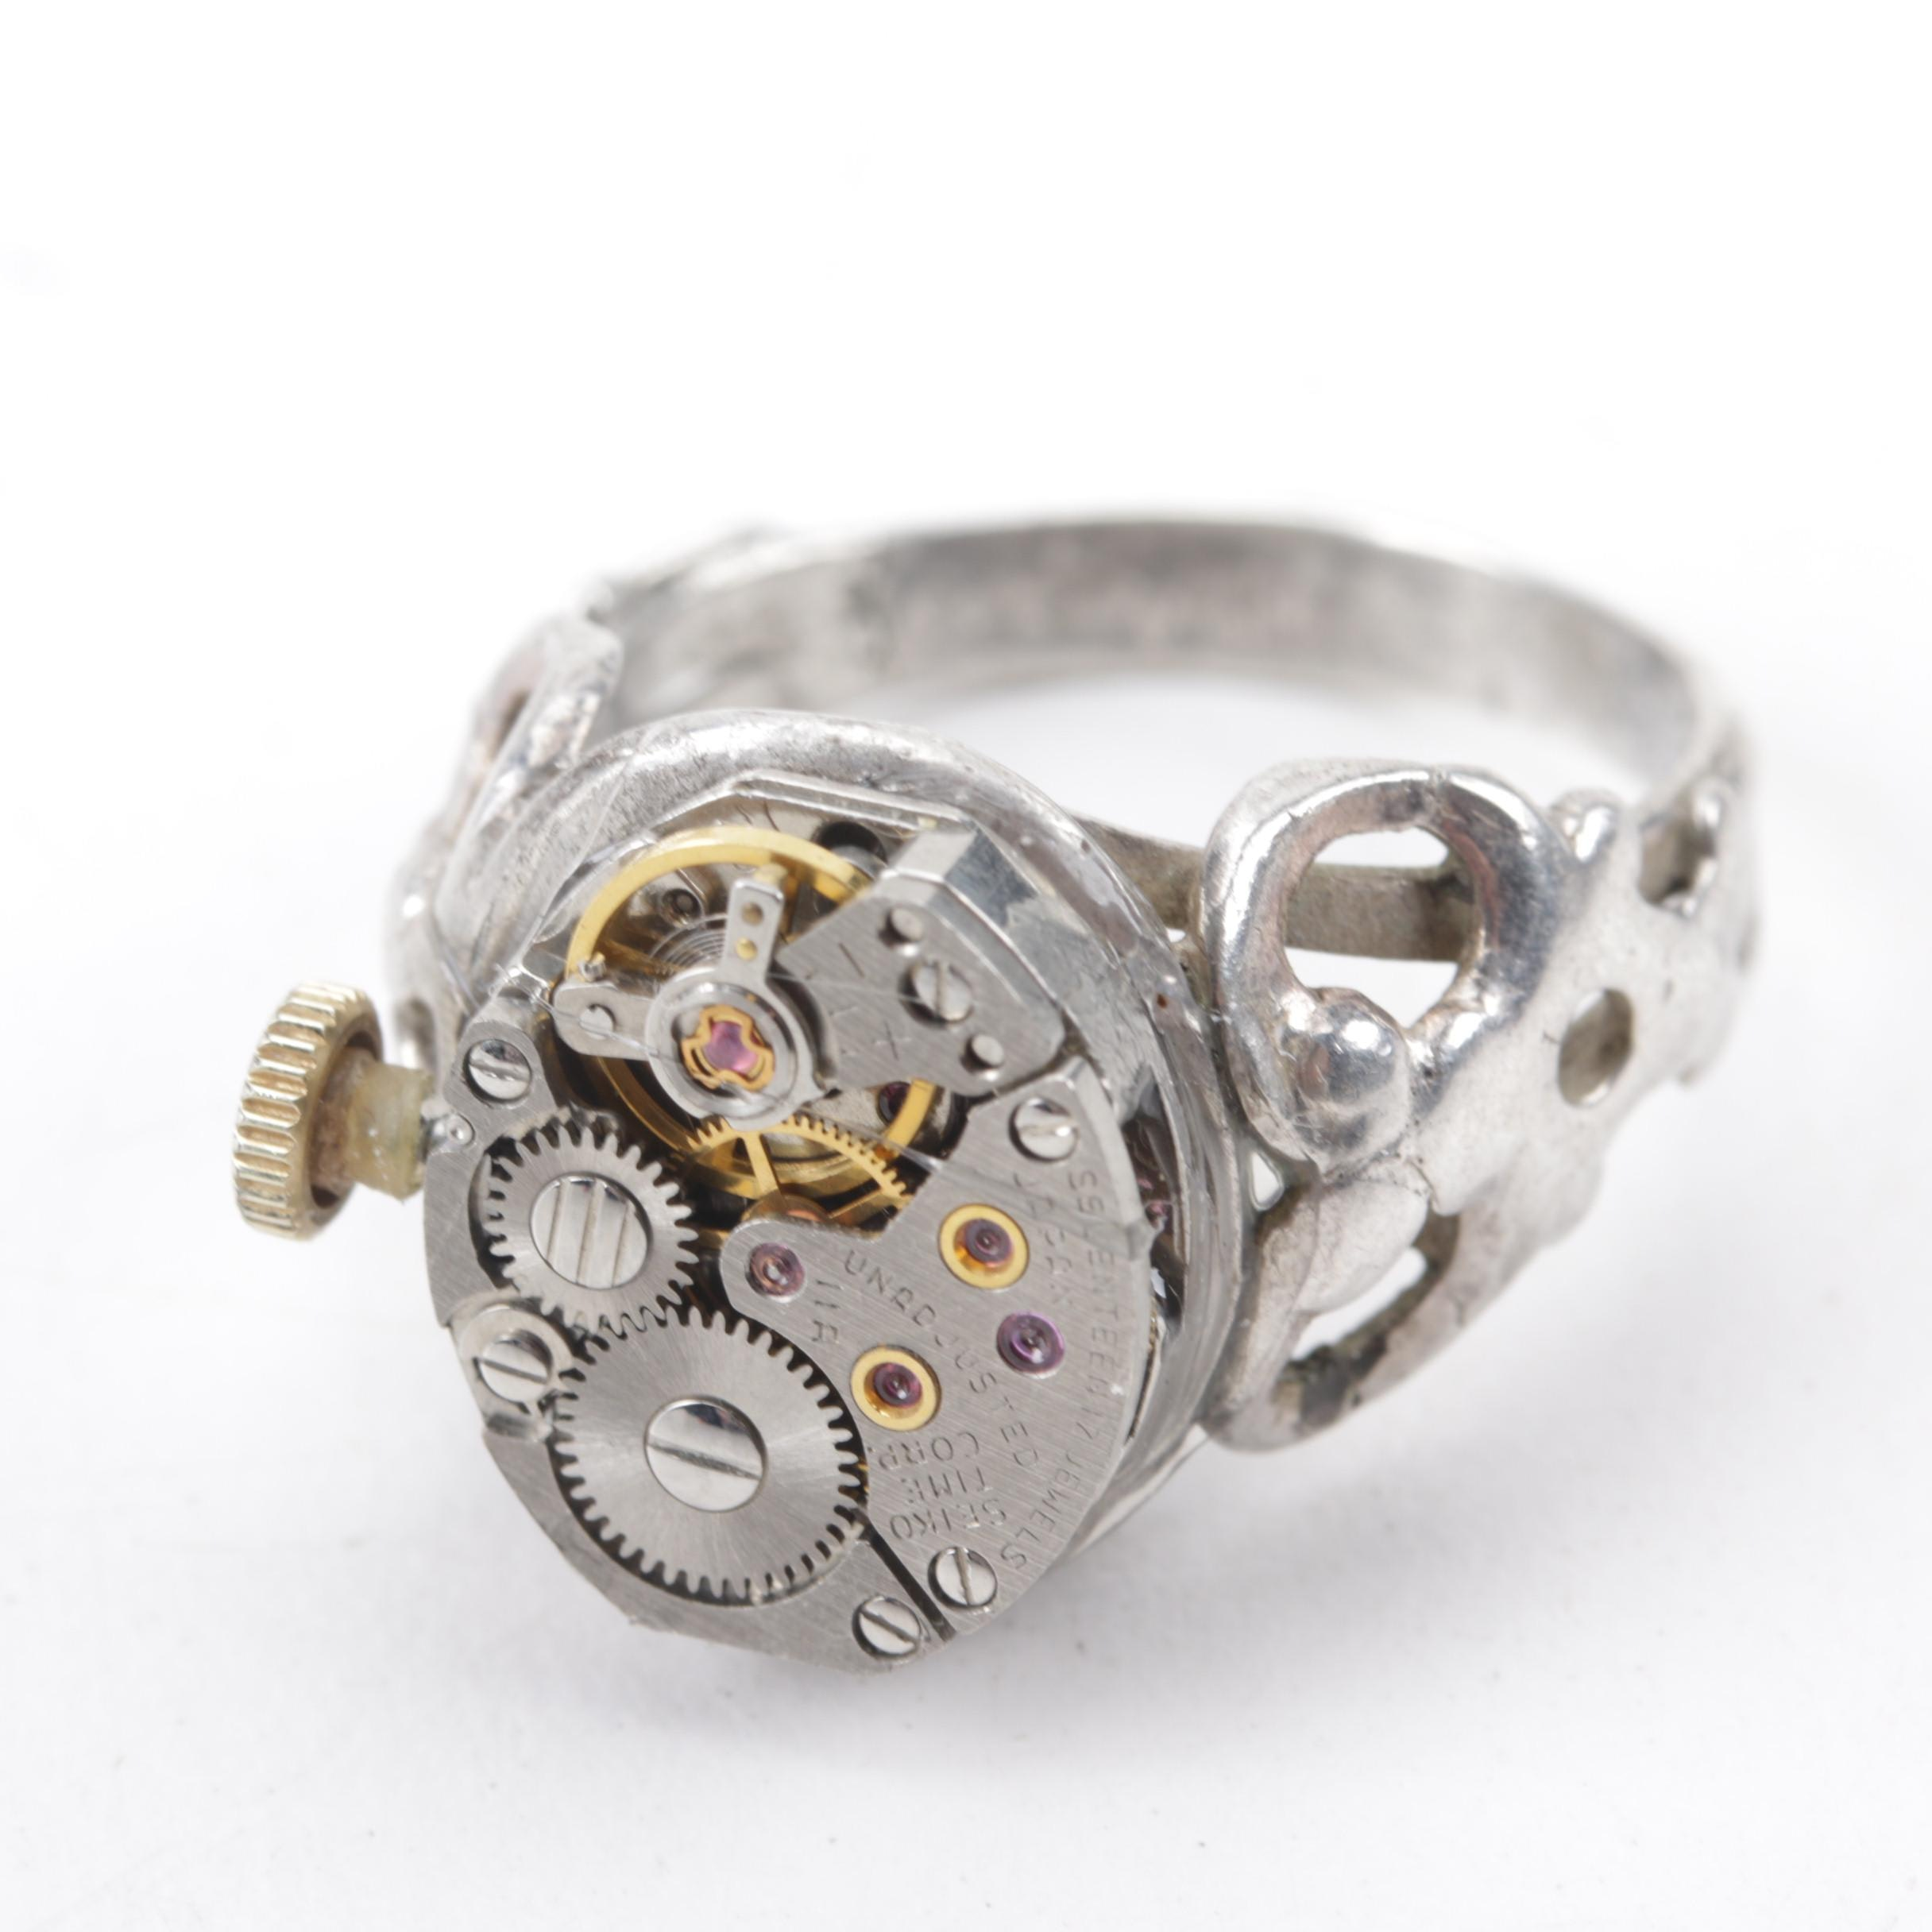 Handcrafted Sterling Silver Watch Movement Ring with Ruby Jewel